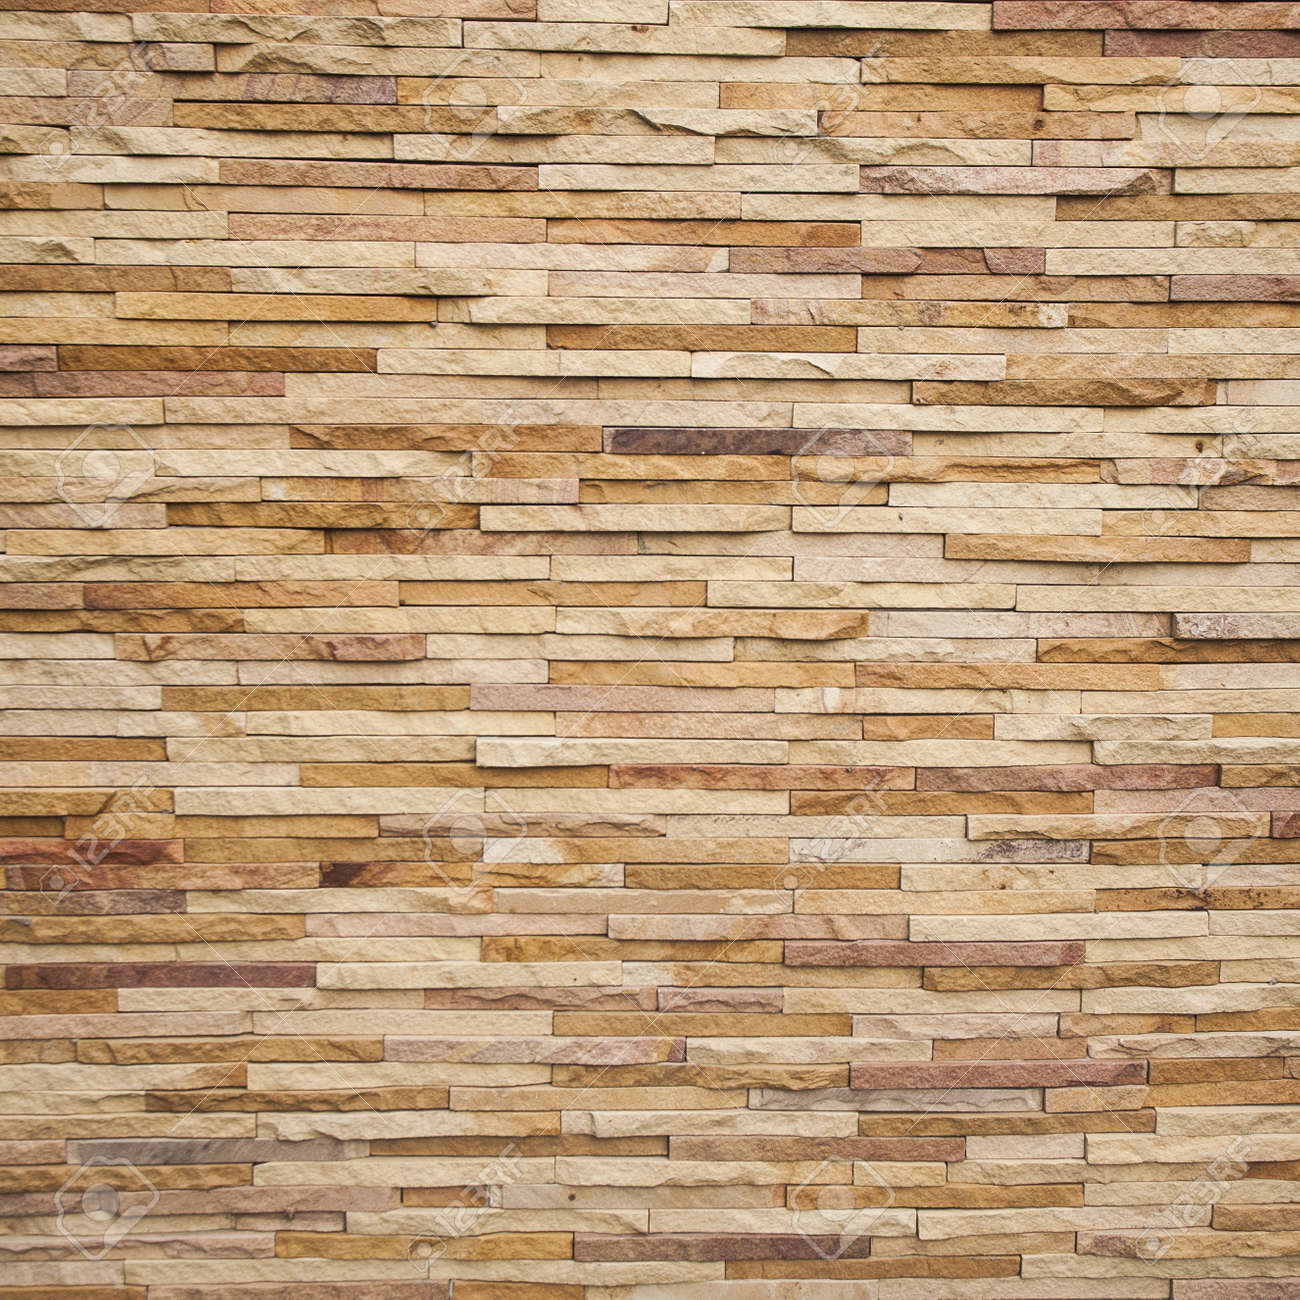 Stone Tile Brick Wall Texture Stock Photo, Picture And Royalty ...